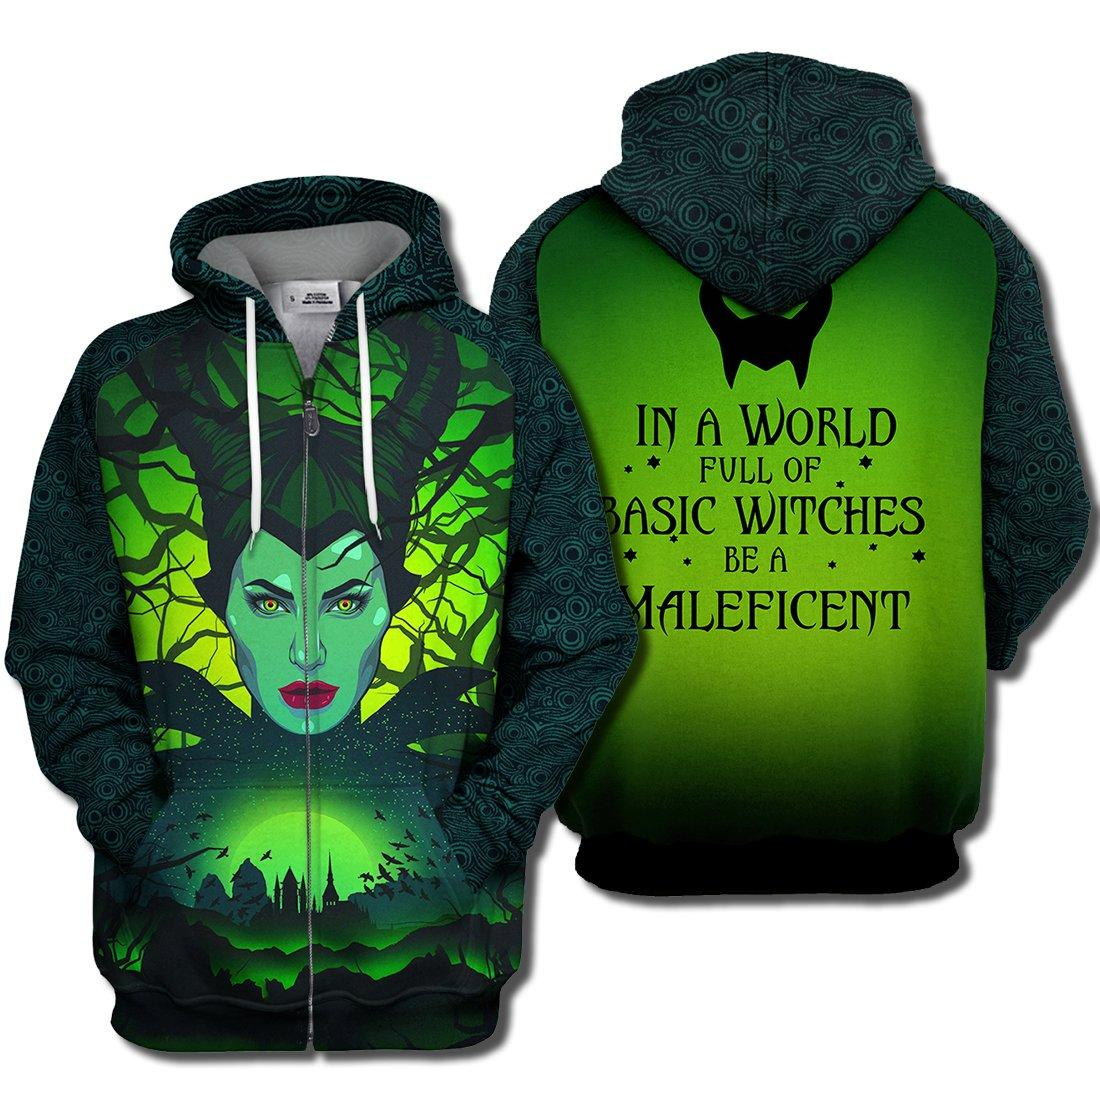 In a world full of basic witches be a maleficent 3d zip hoodie